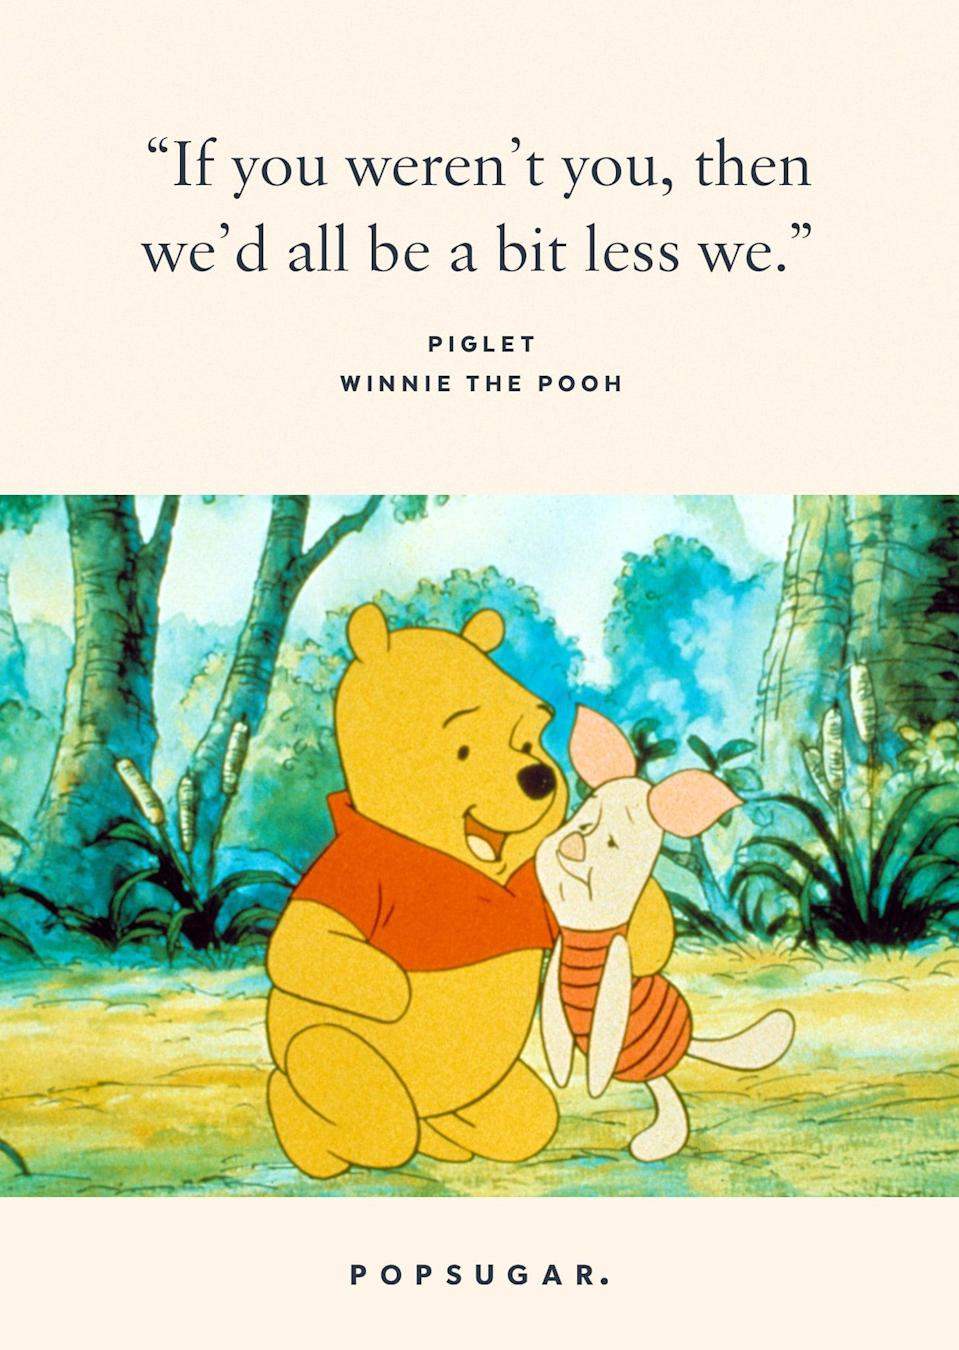 "<p>""If you weren't you, then we'd all be a bit less we."" - Piglet, <strong>Winnie the Pooh</strong></p>"